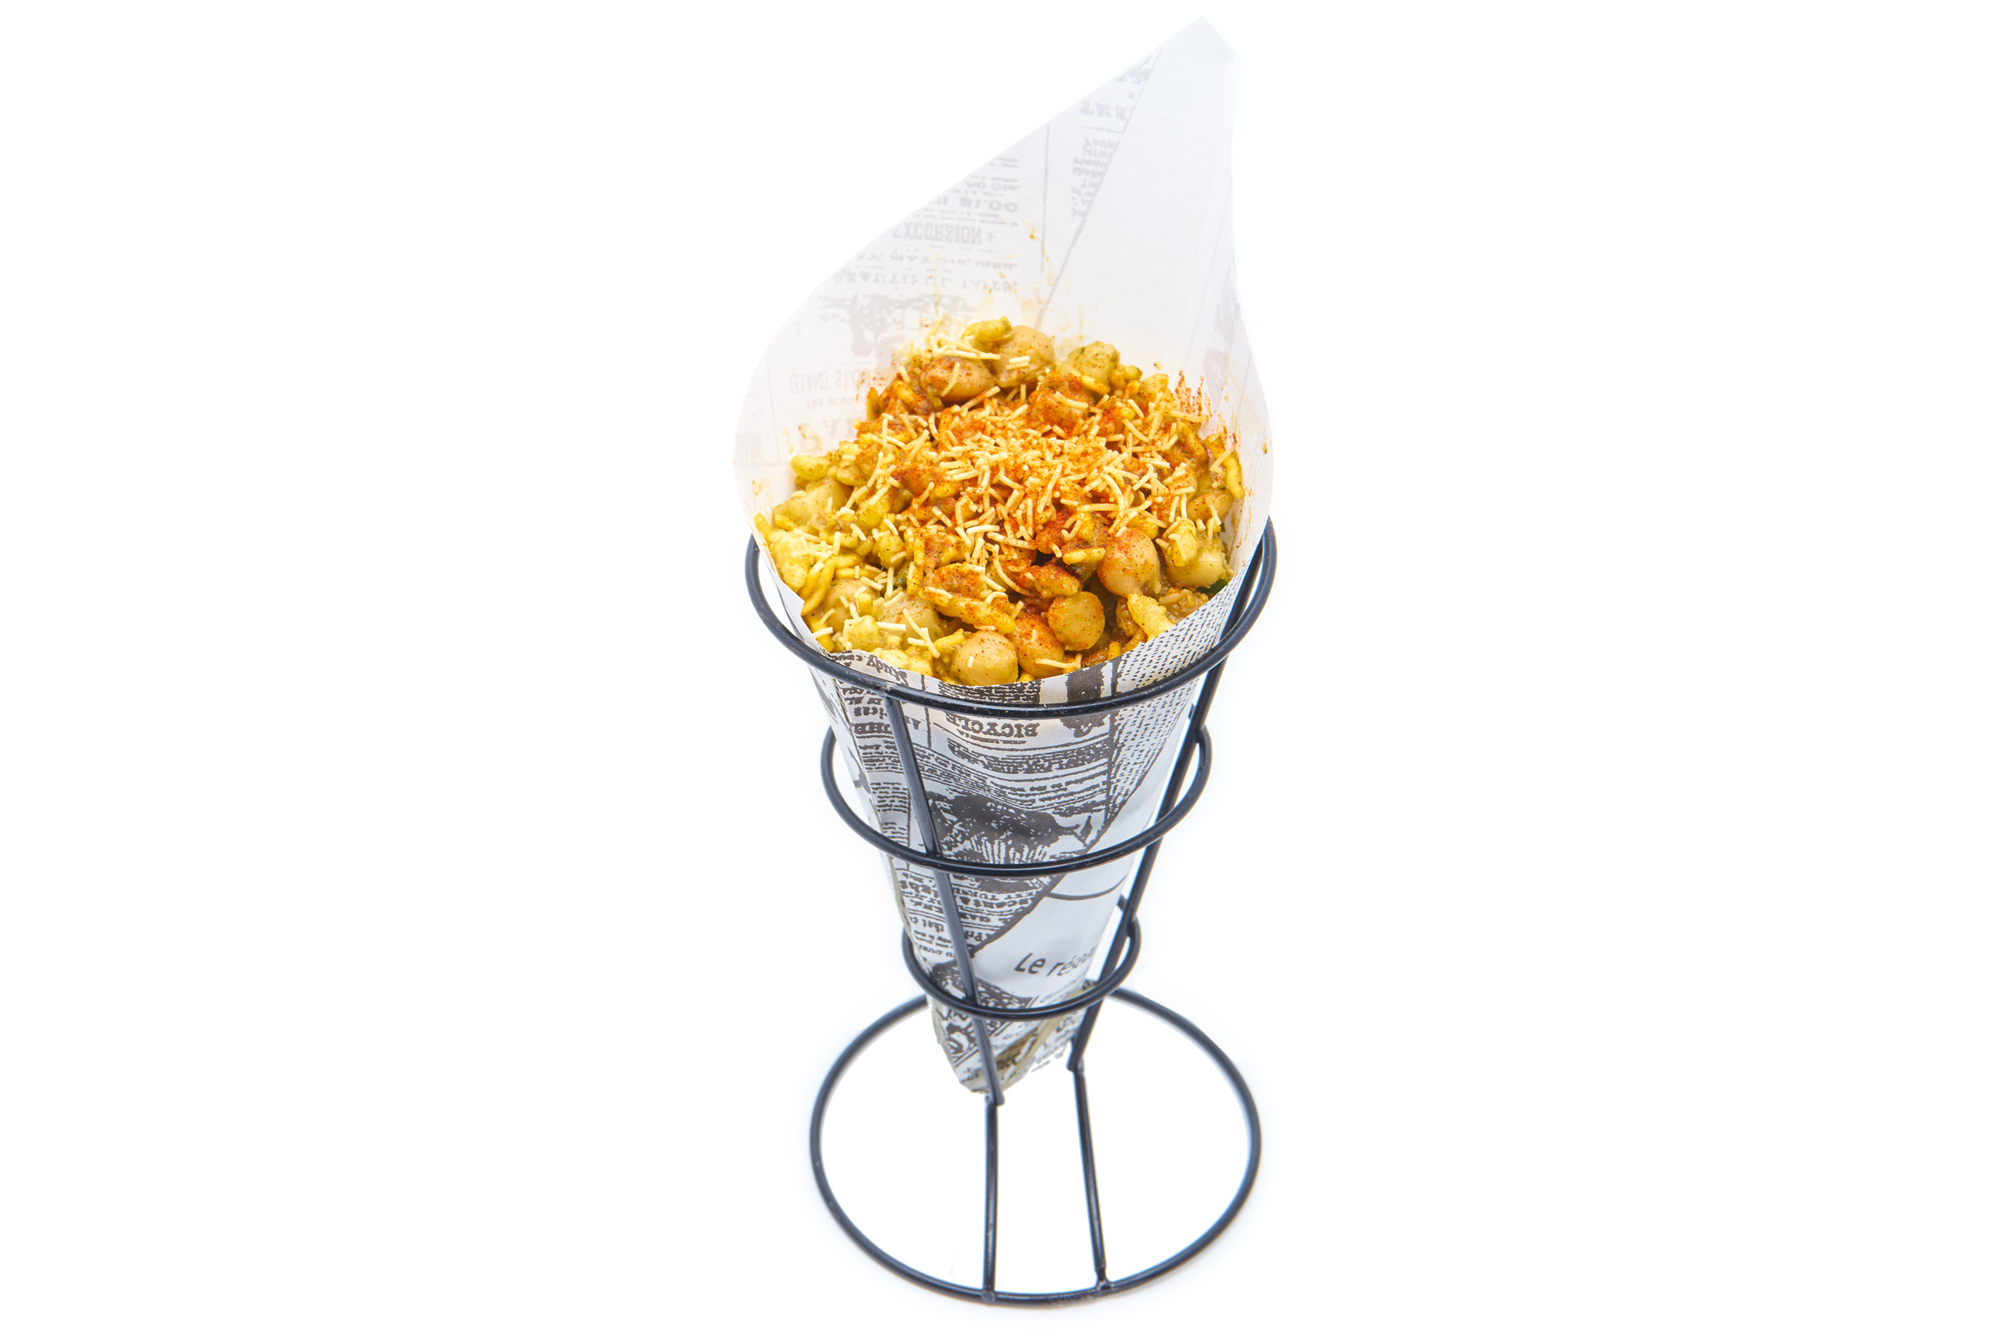 BHEL PURI   puffed rice, potato garbanzo mash, cucumber, chutneys, crispy sev noodles (V)